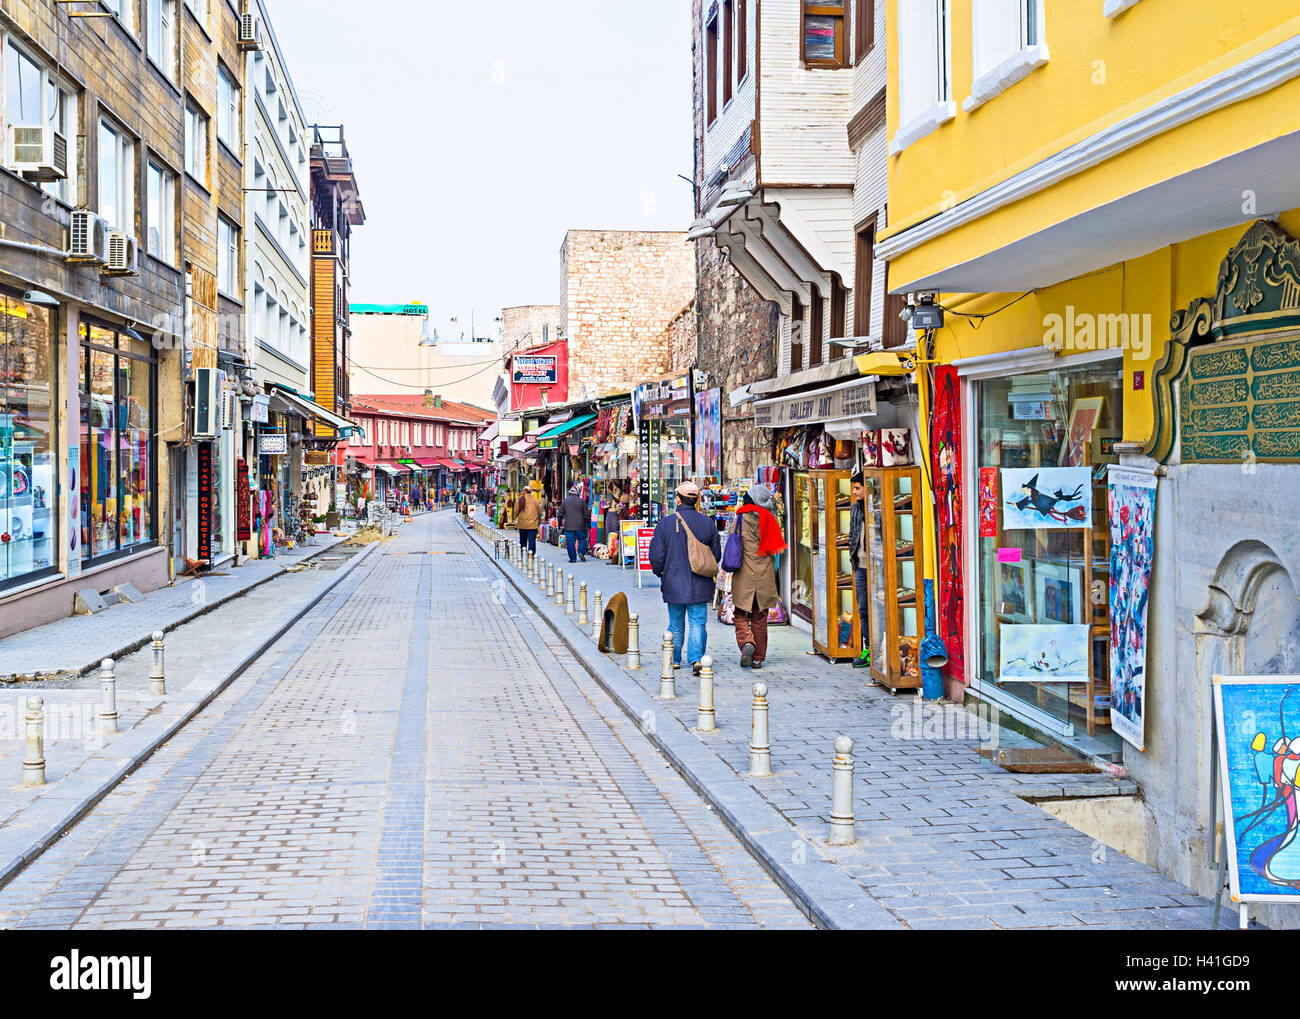 The Taya Hatun street is famous for the local bazaar and interesting Flea Market in Istanbul. Stock Photo